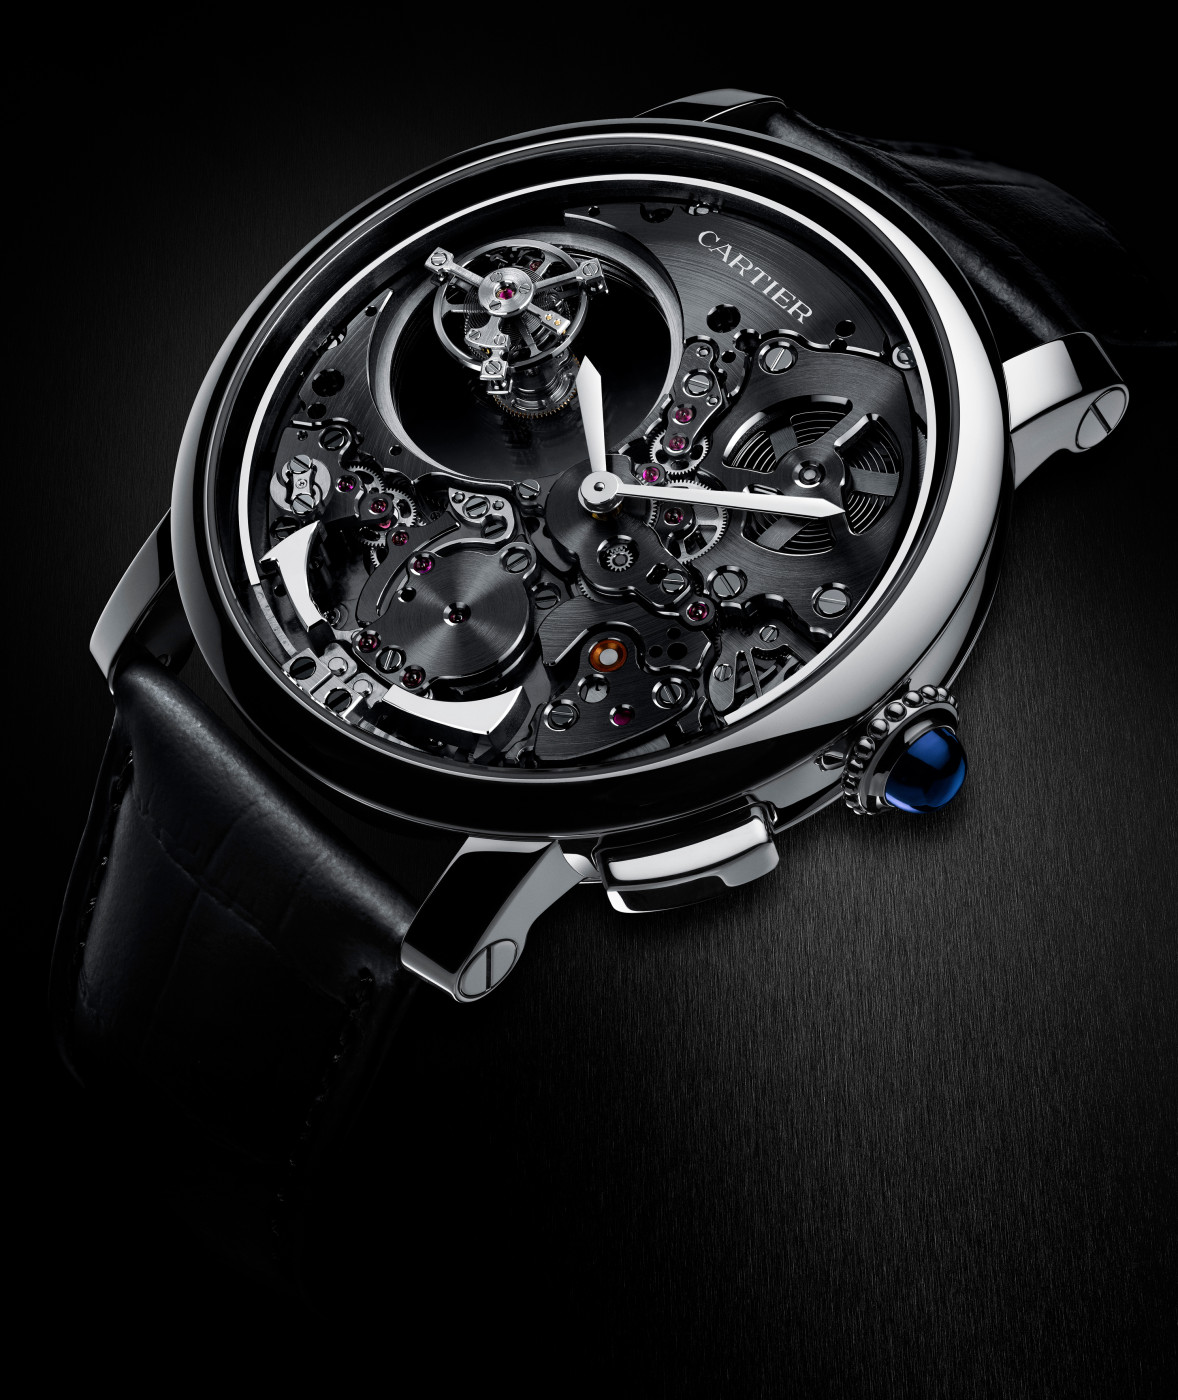 06C_Mysterious_Double_Tourbillon_watch_WHRO0023